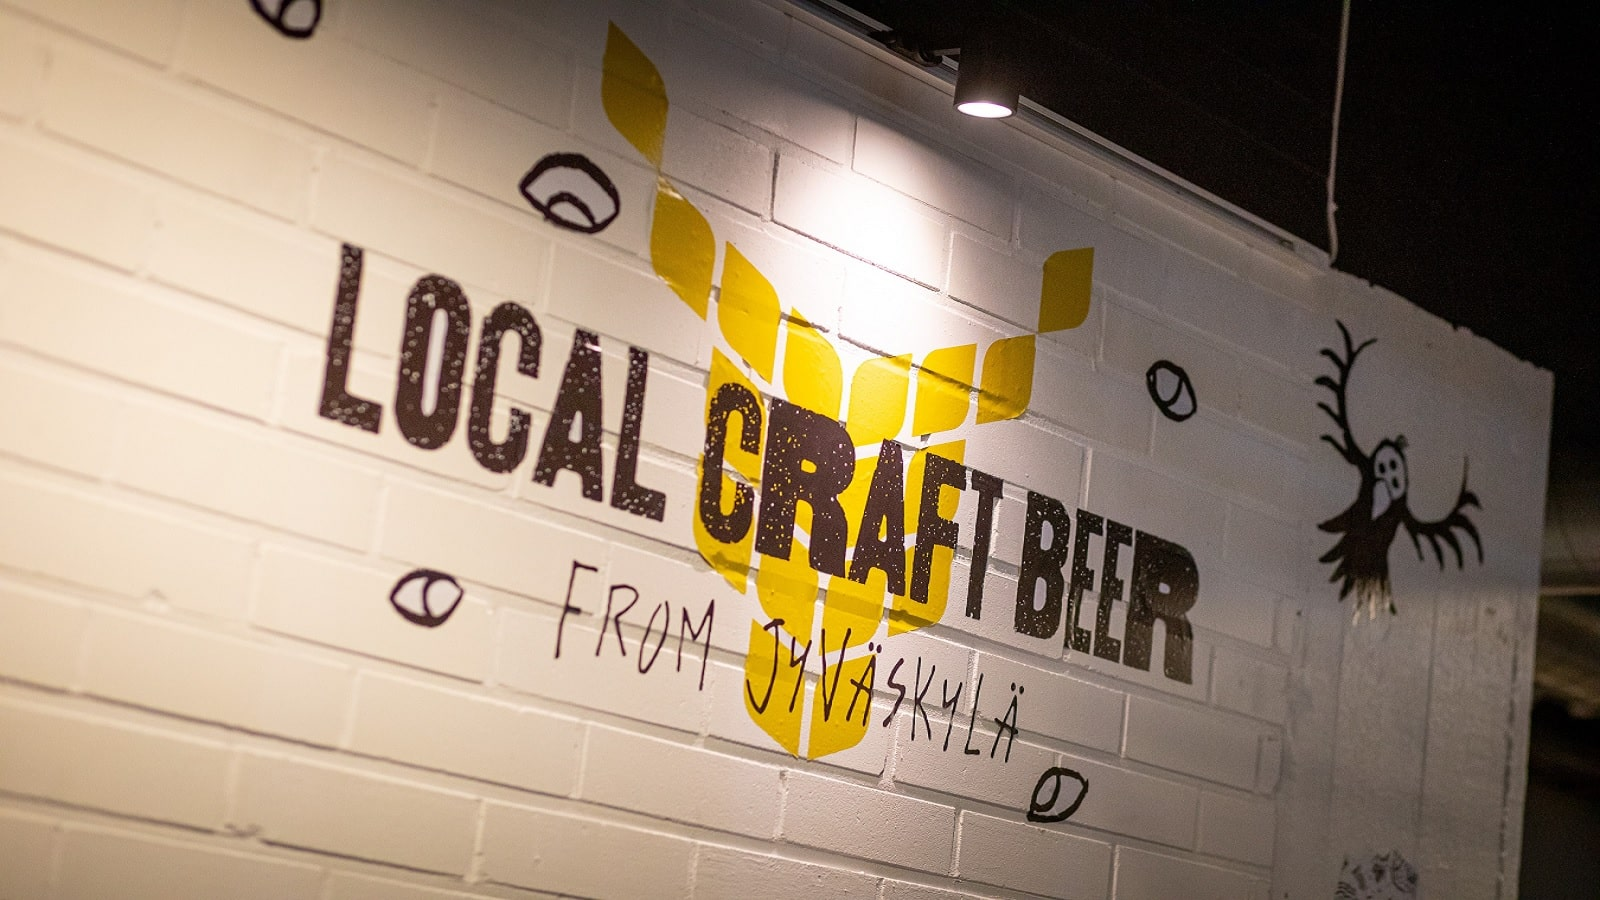 Local craft beer from Jyväskylä -text in the wall of HIISI brewery.